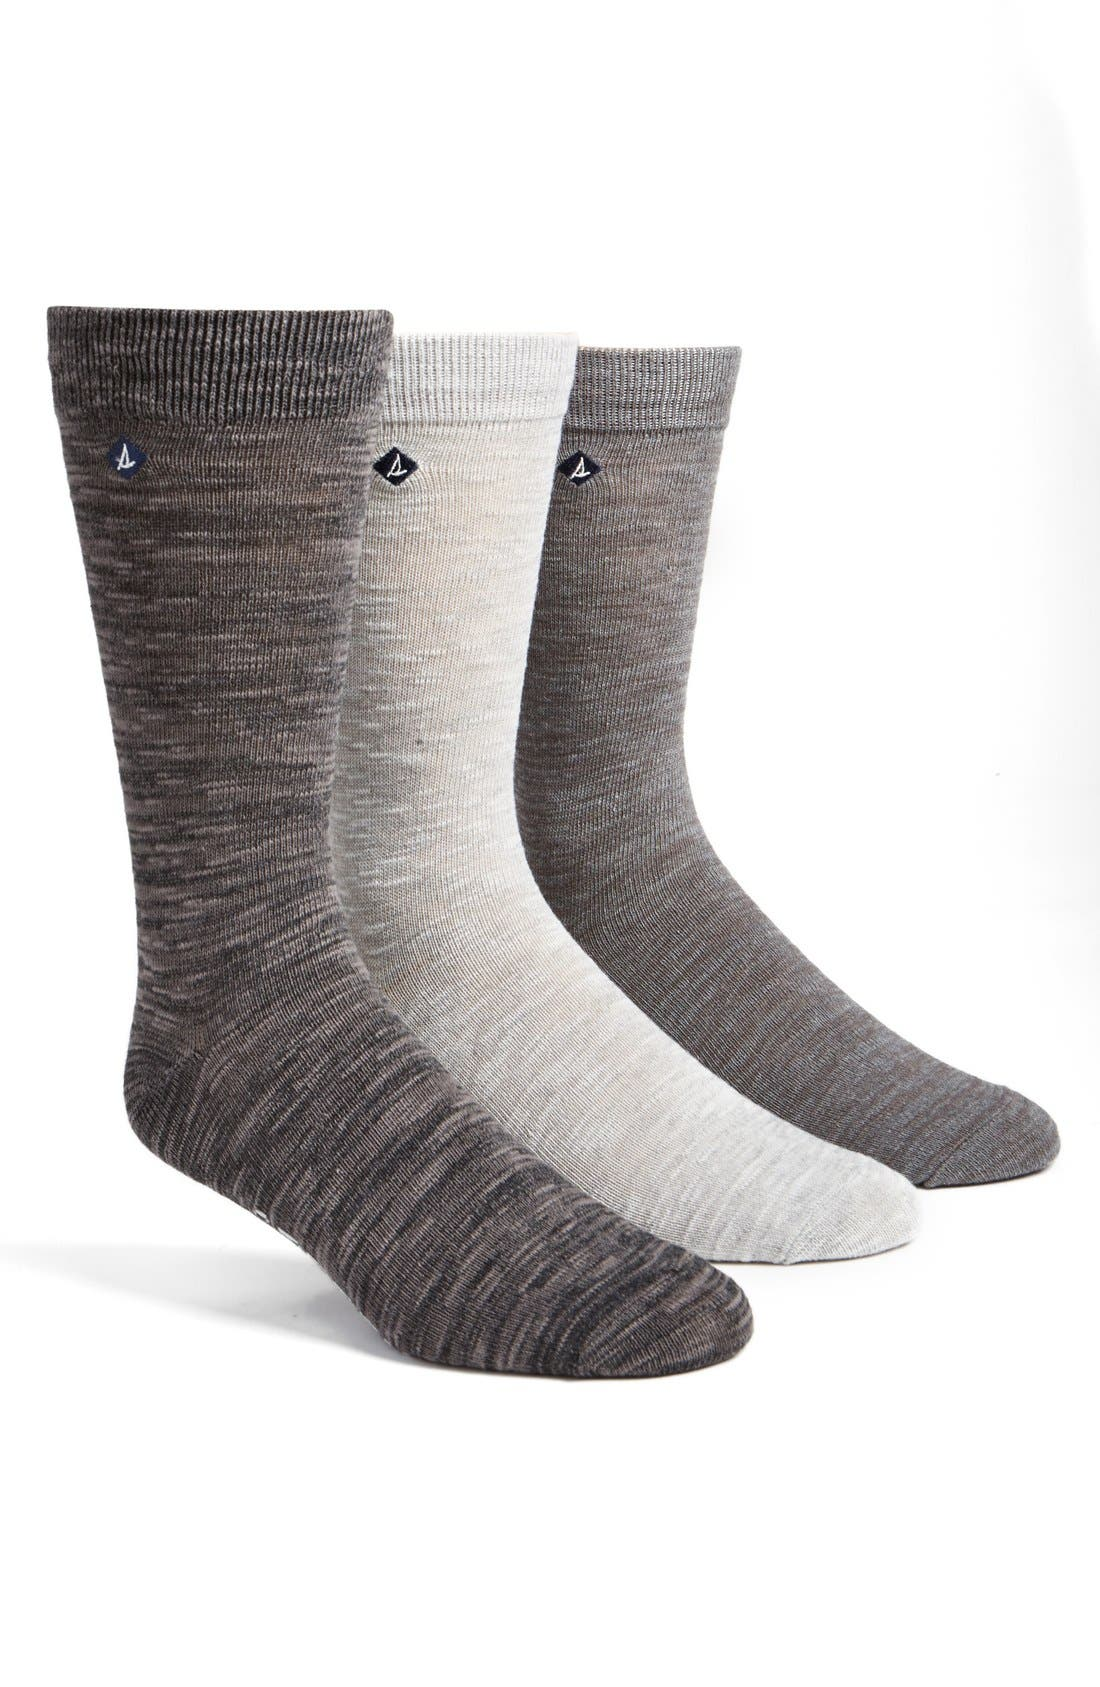 Alternate Image 1 Selected - Sperry Cotton Blend Socks (3-Pack)